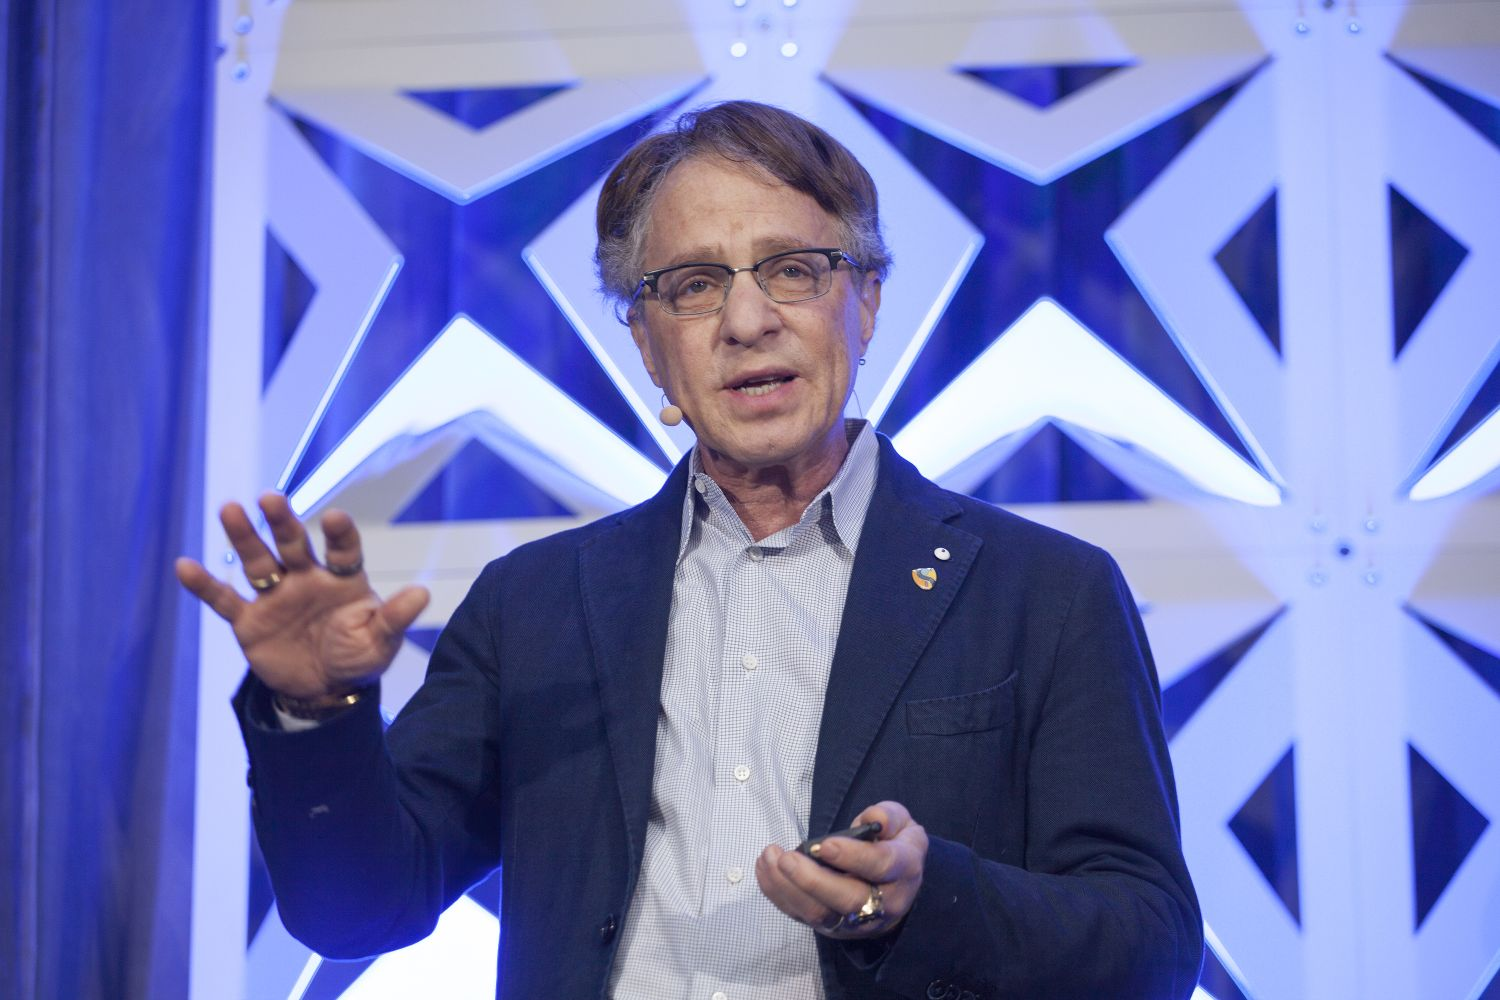 Ray Kurzweil w 2016 roku (fot. UMB Americas / flickr.com /CC BY-NC-ND 2.0)